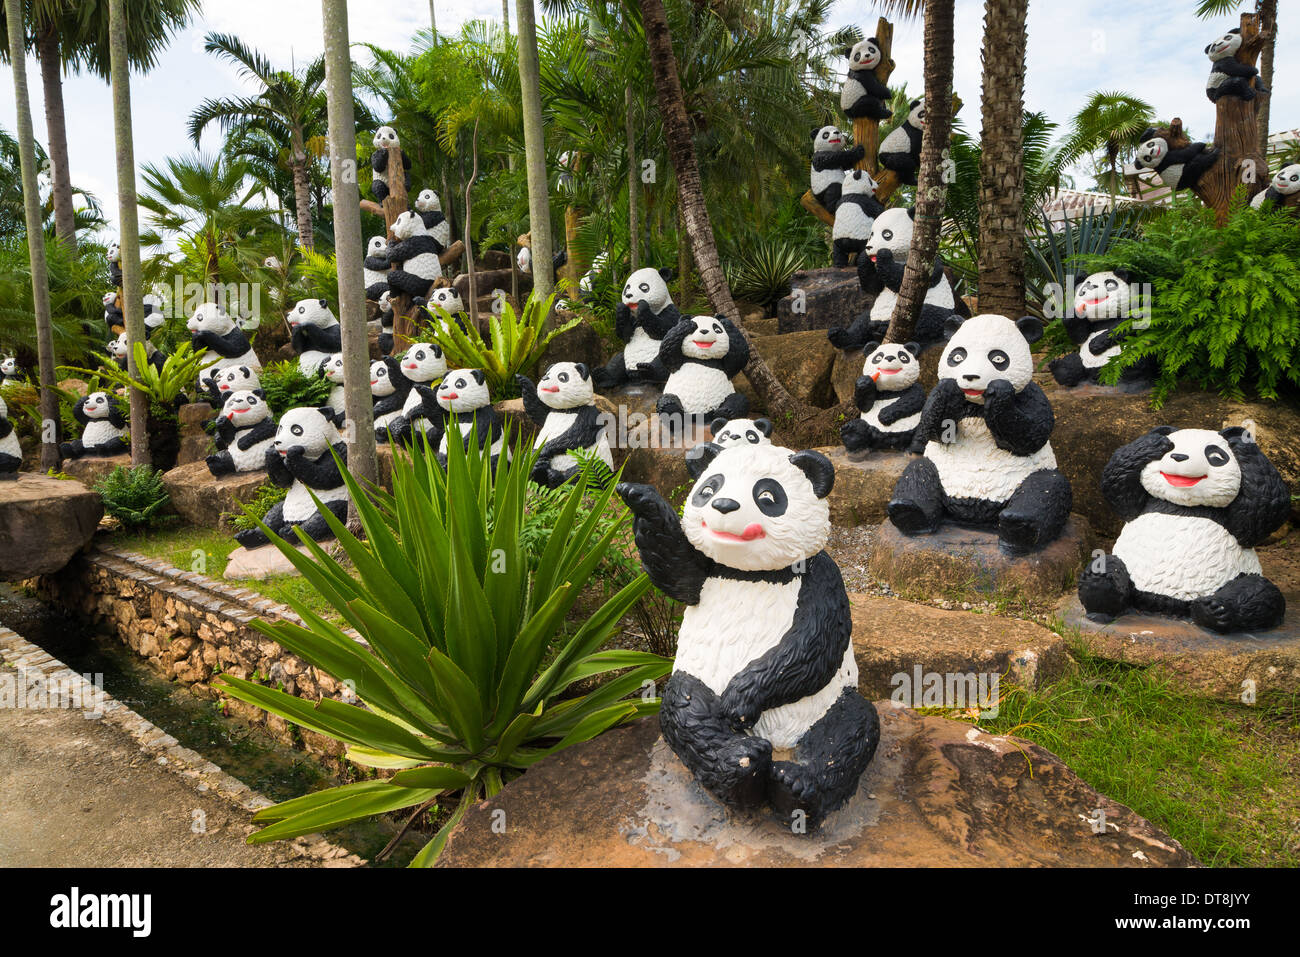 Panda Bears Sculptures, Nong Nooch Tropical Garden And Resort, Thailand    Stock Image